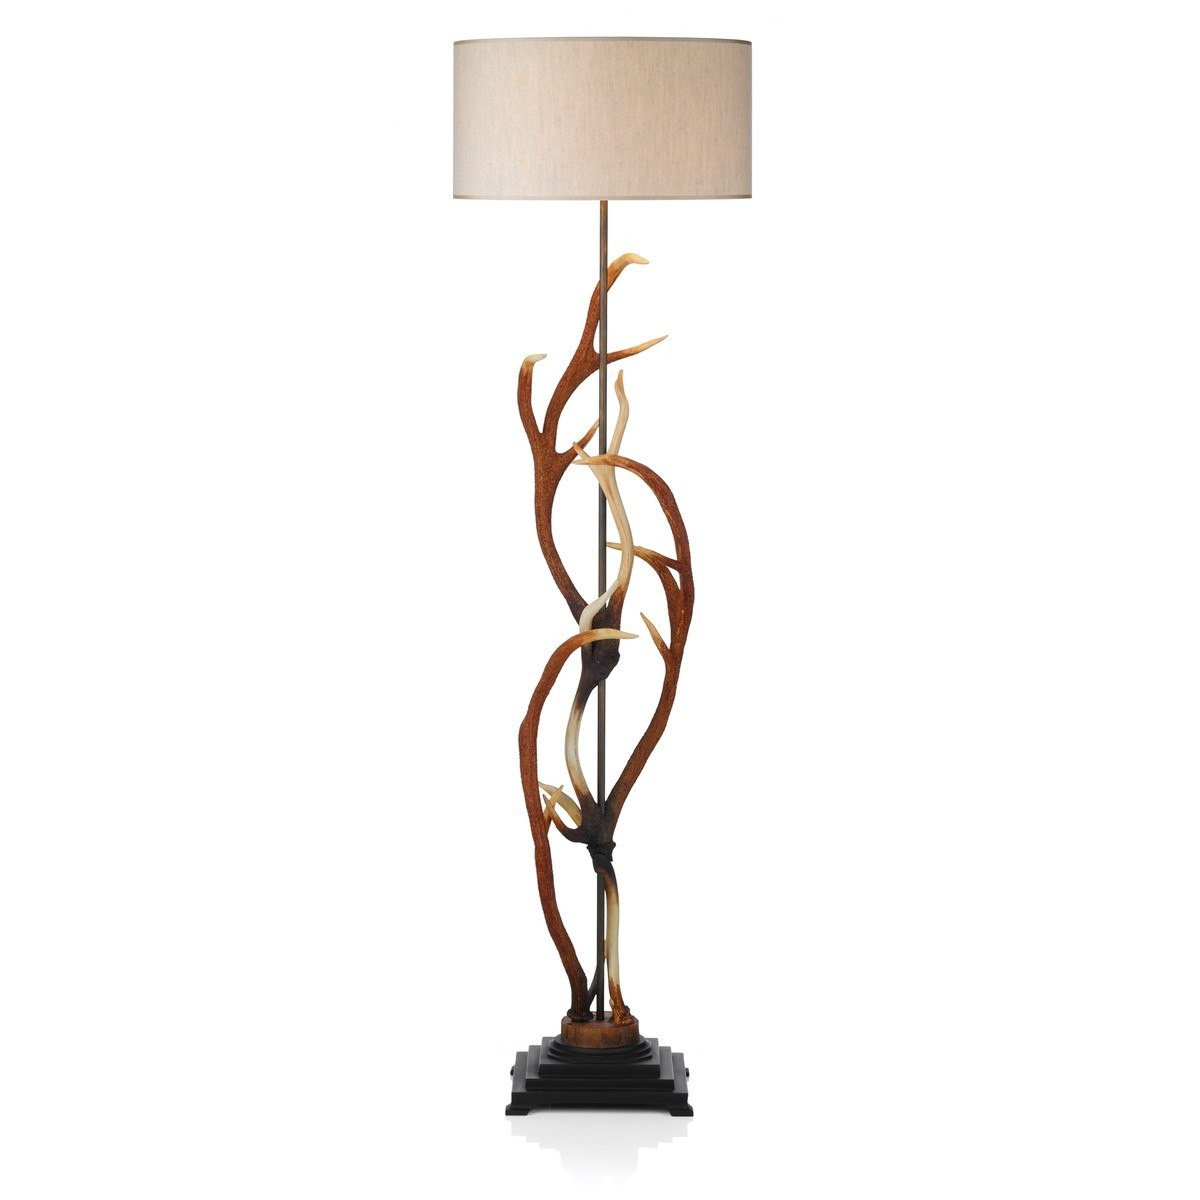 Antler Rustic Floor Lamp - London Lighting - 1